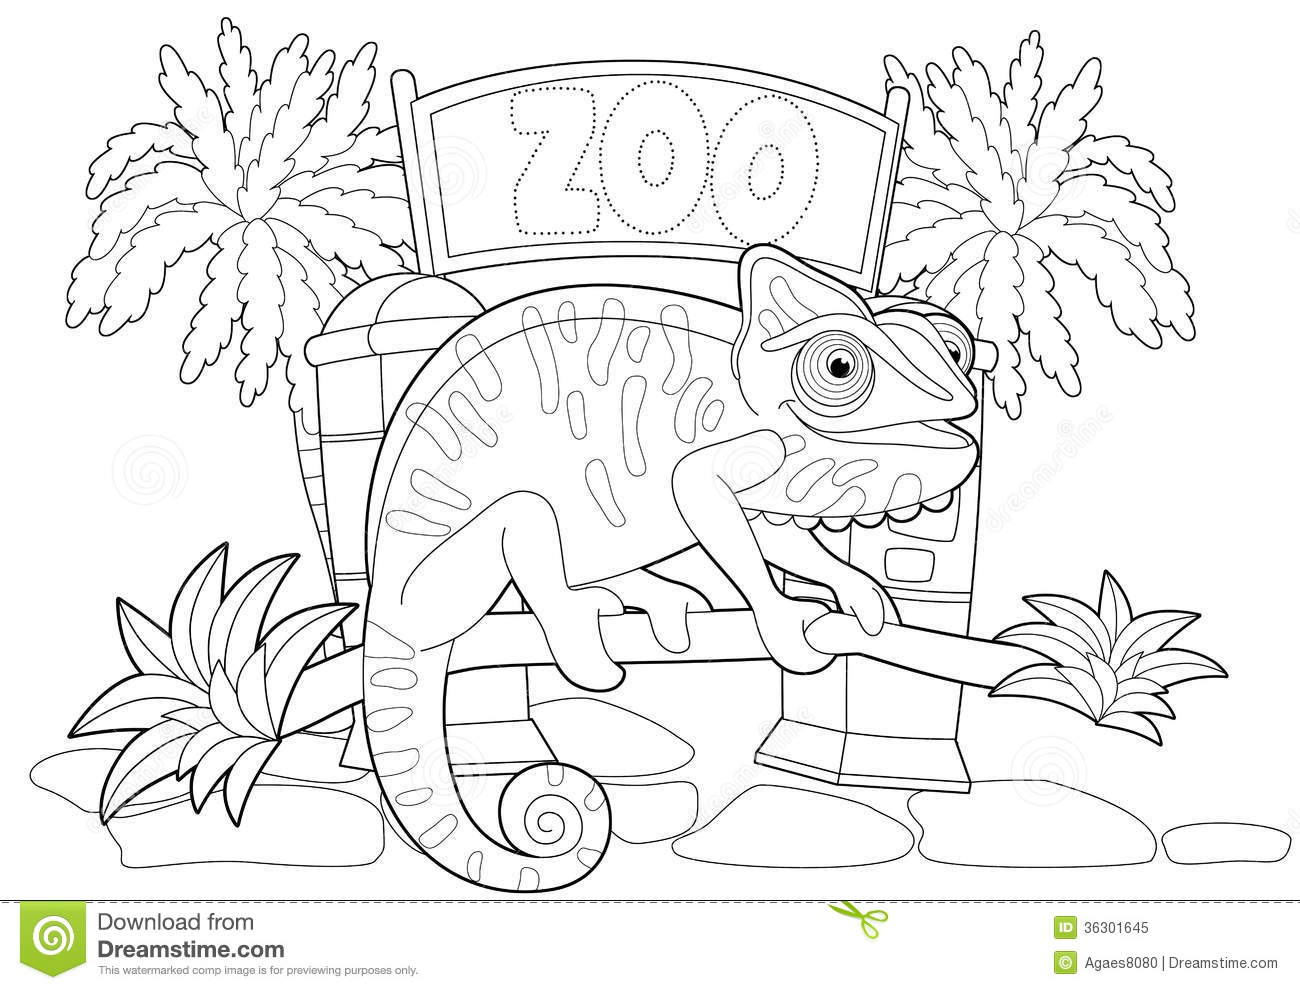 coloring page the zoo illustration for the children